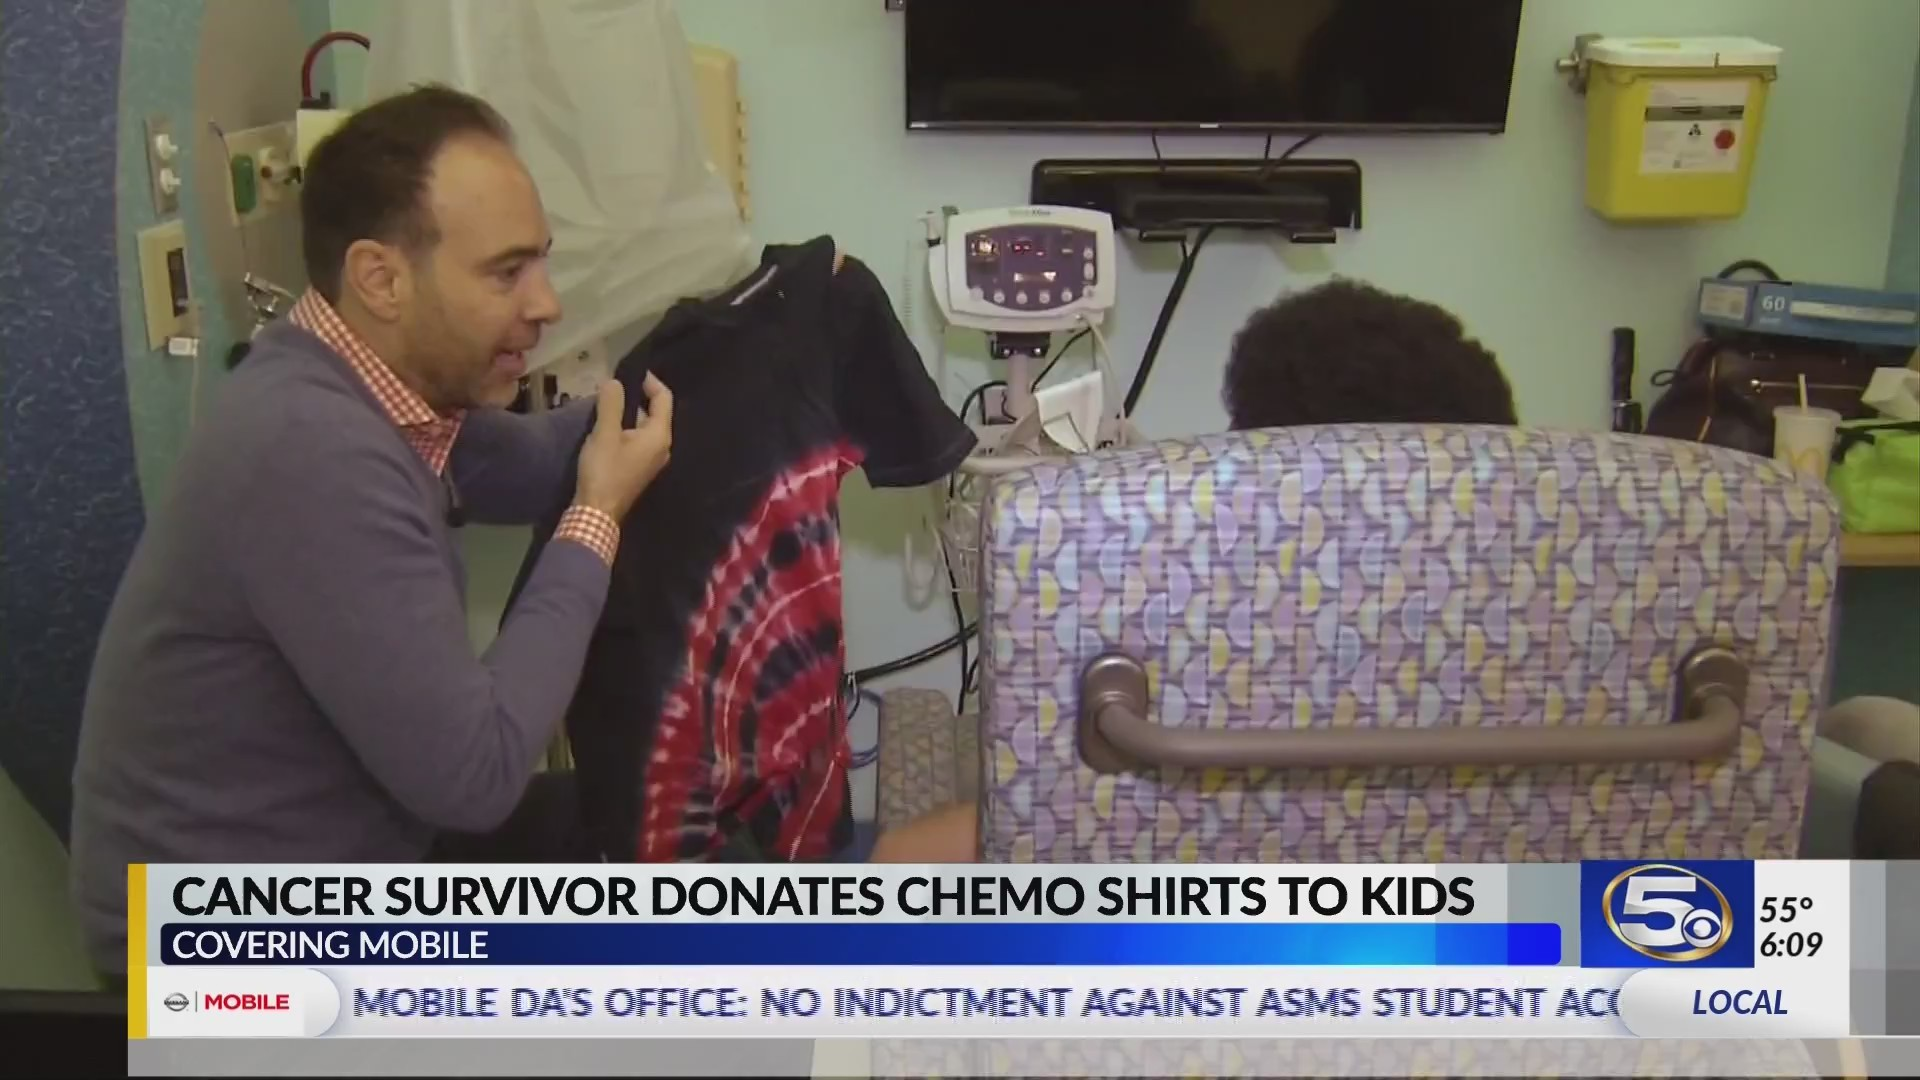 VIDEO: Cancer survivor gives young chemo patients a gift to make receiving treatment easier